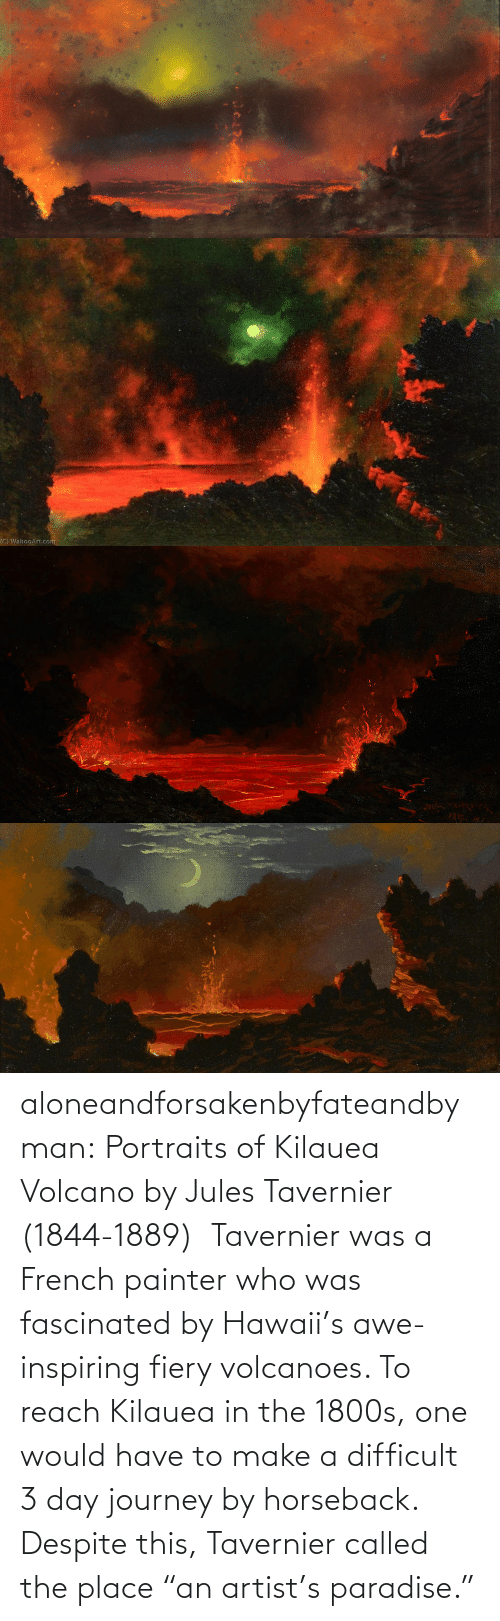 "Journey: aloneandforsakenbyfateandbyman:  Portraits of Kilauea Volcano by Jules Tavernier (1844-1889)    Tavernier was a French painter who was fascinated by Hawaii's awe-inspiring fiery volcanoes. To reach Kilauea in the 1800s, one would have to make a difficult 3 day journey by horseback. Despite this, Tavernier called the place ""an artist's paradise."""